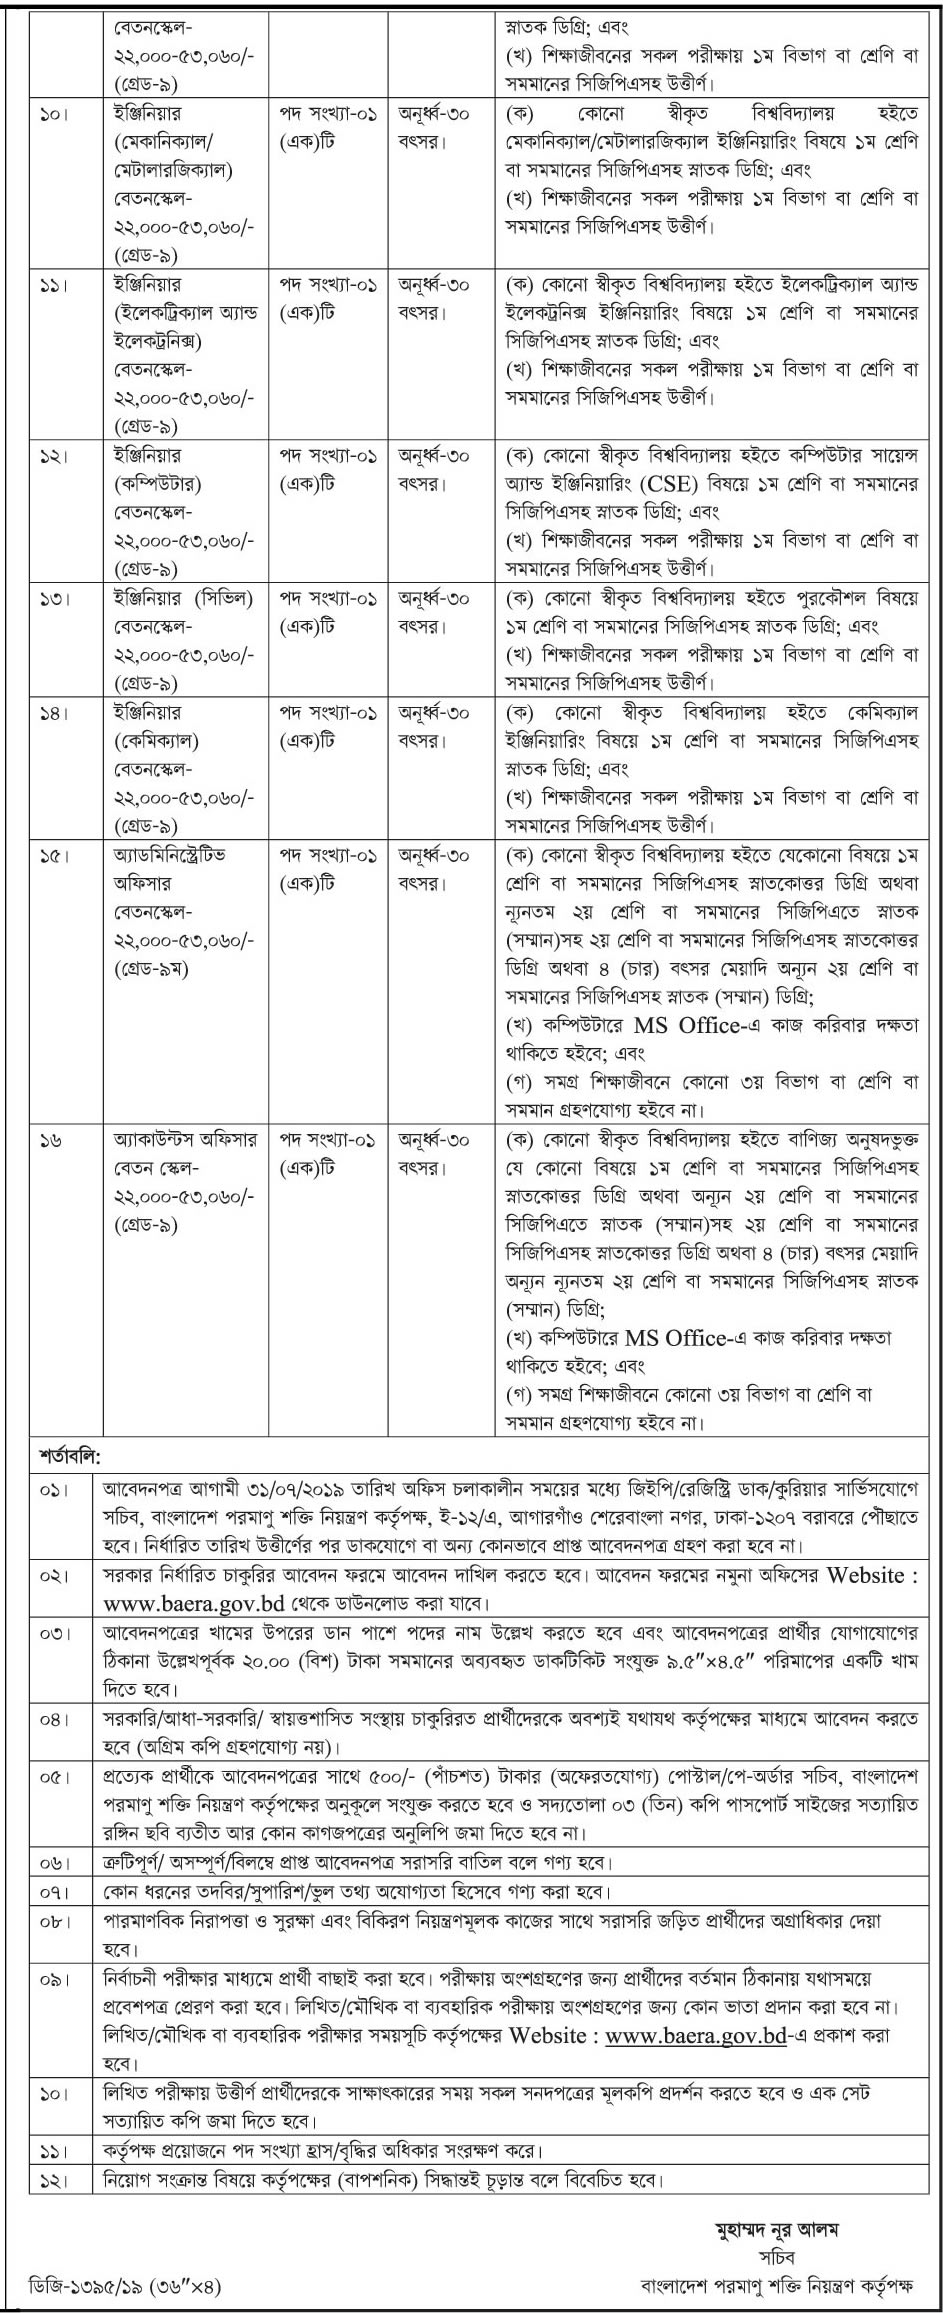 Bangladesh Atomic Energy Regulatory Authority